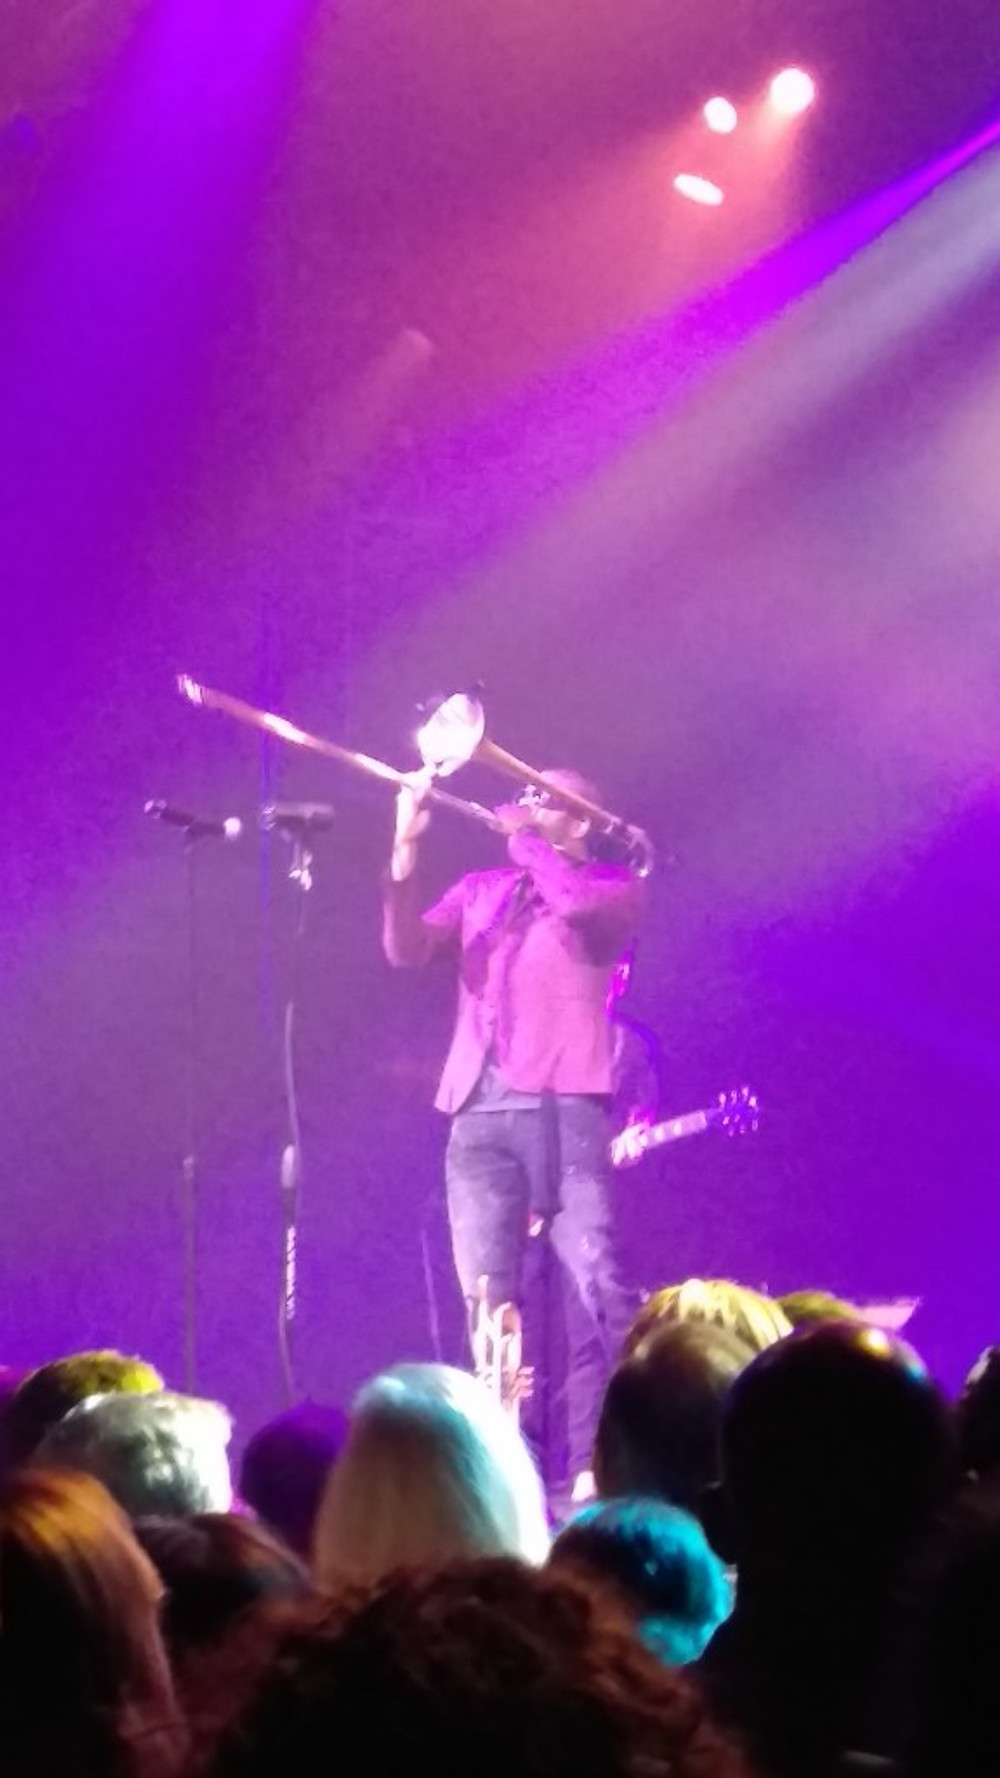 This is a picture of Troy Andrews playing the trombone during the first song of their set.